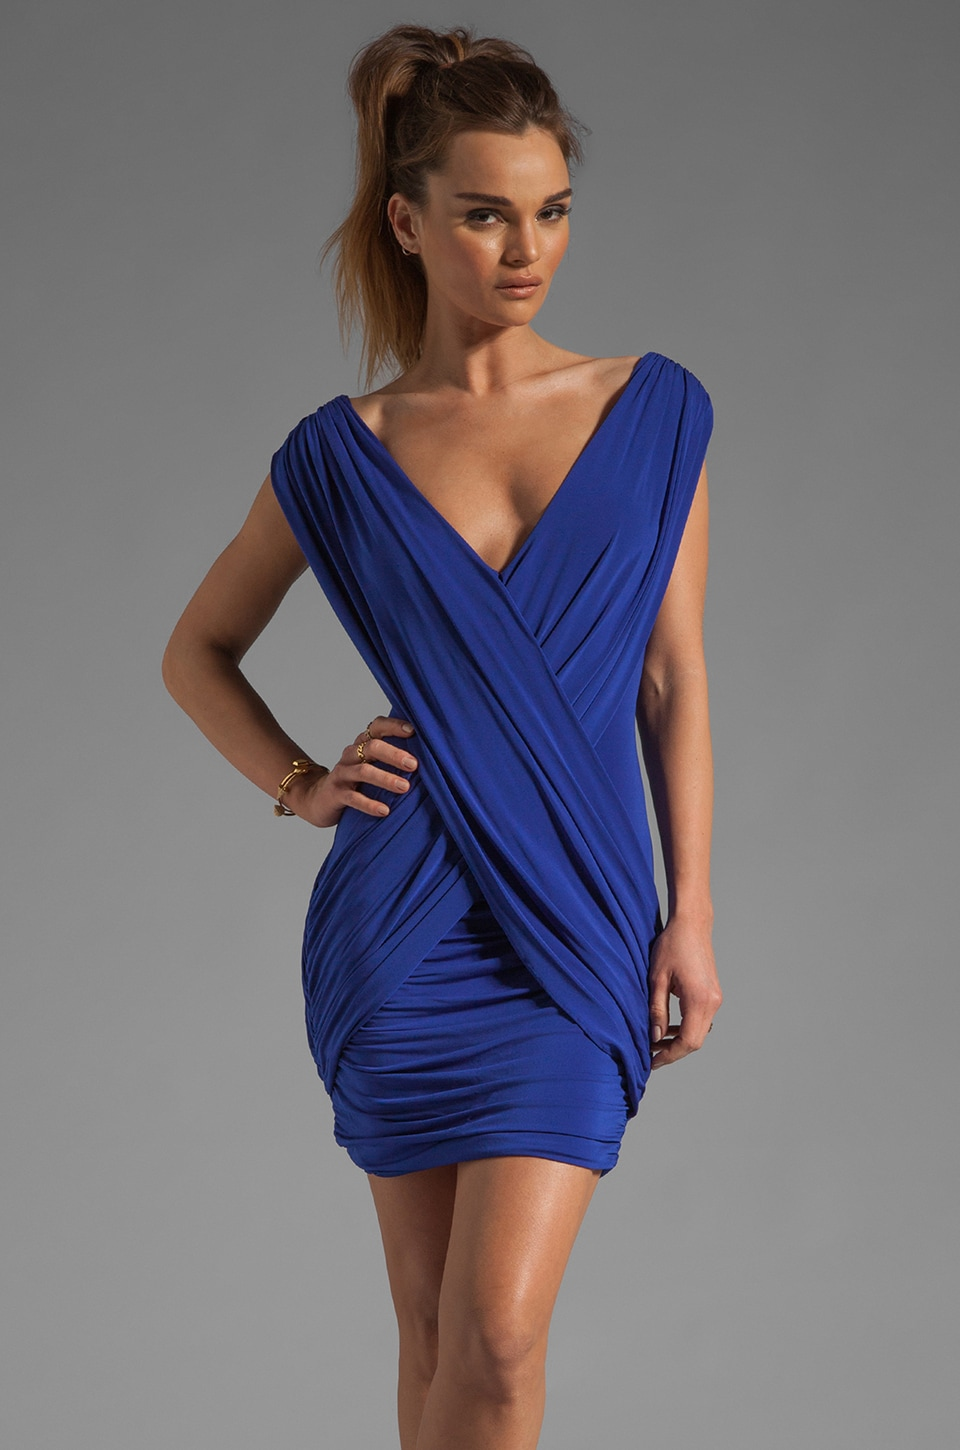 Blue Mini Dress Cocktail Dresses 2016